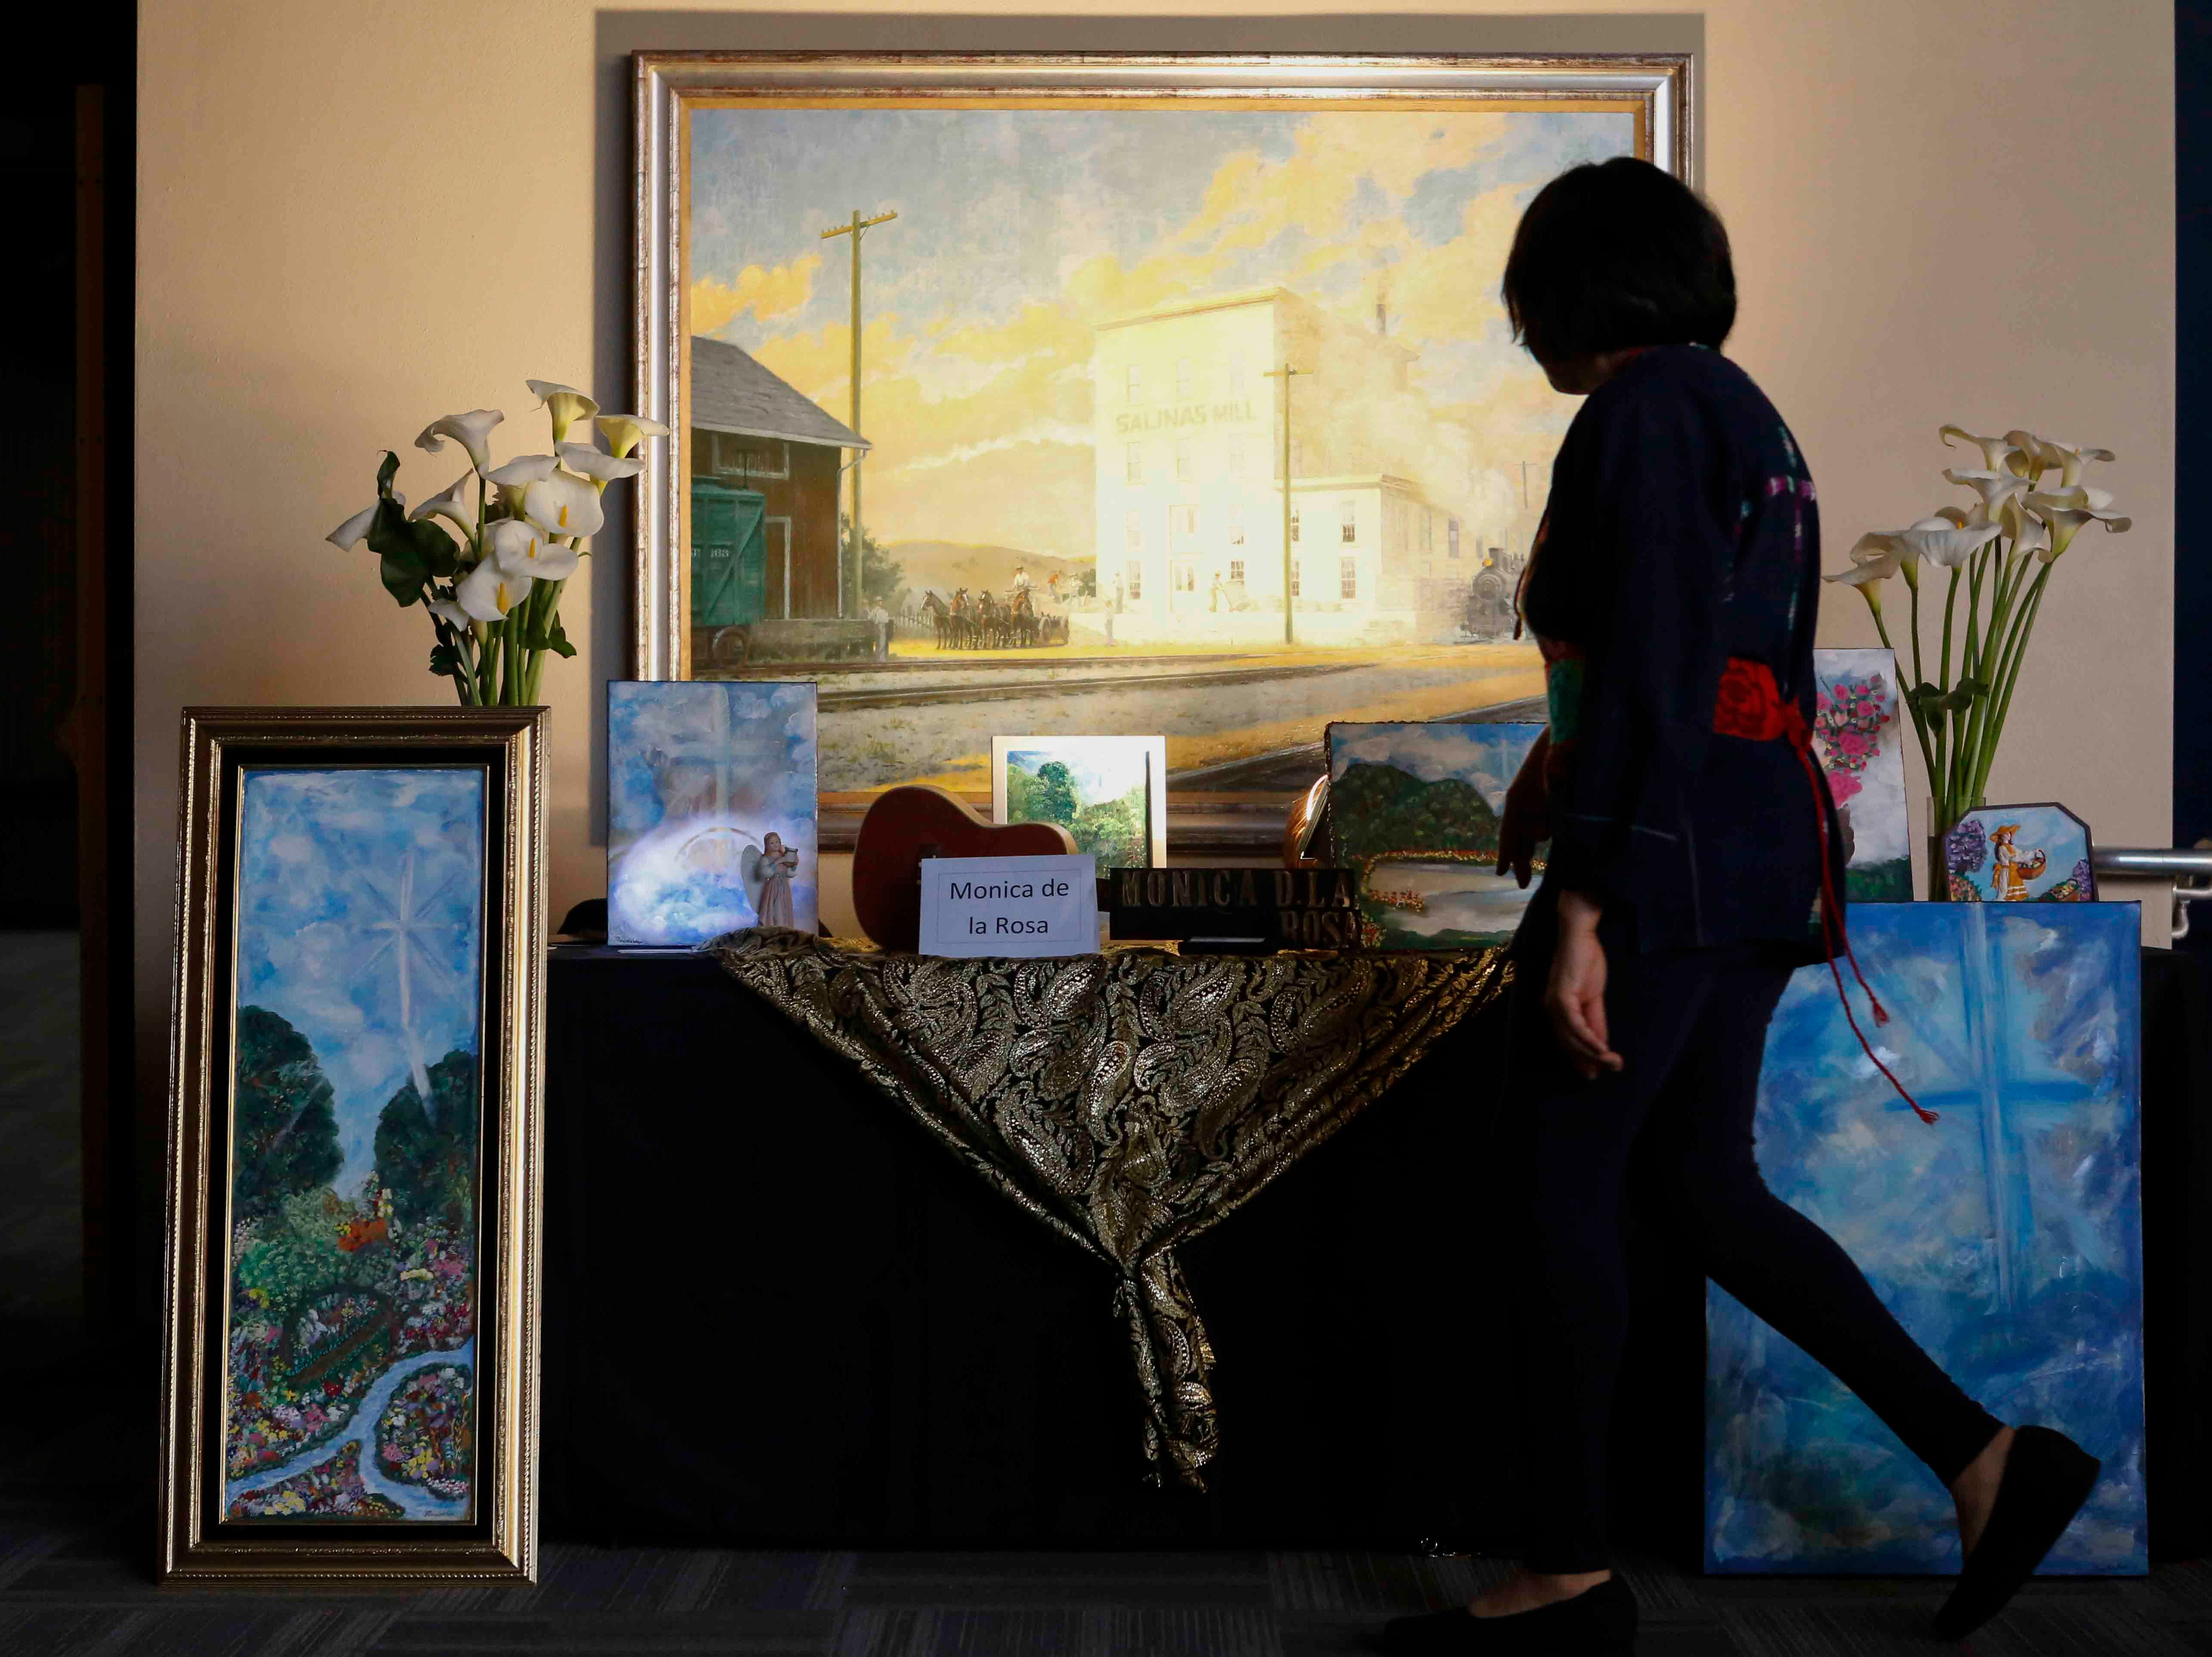 A woman walks past artwork on display during the 12th annual Noche Bohemia at Sherwood Hall on Saturday, April 27, 2019 in Salinas, Calif.